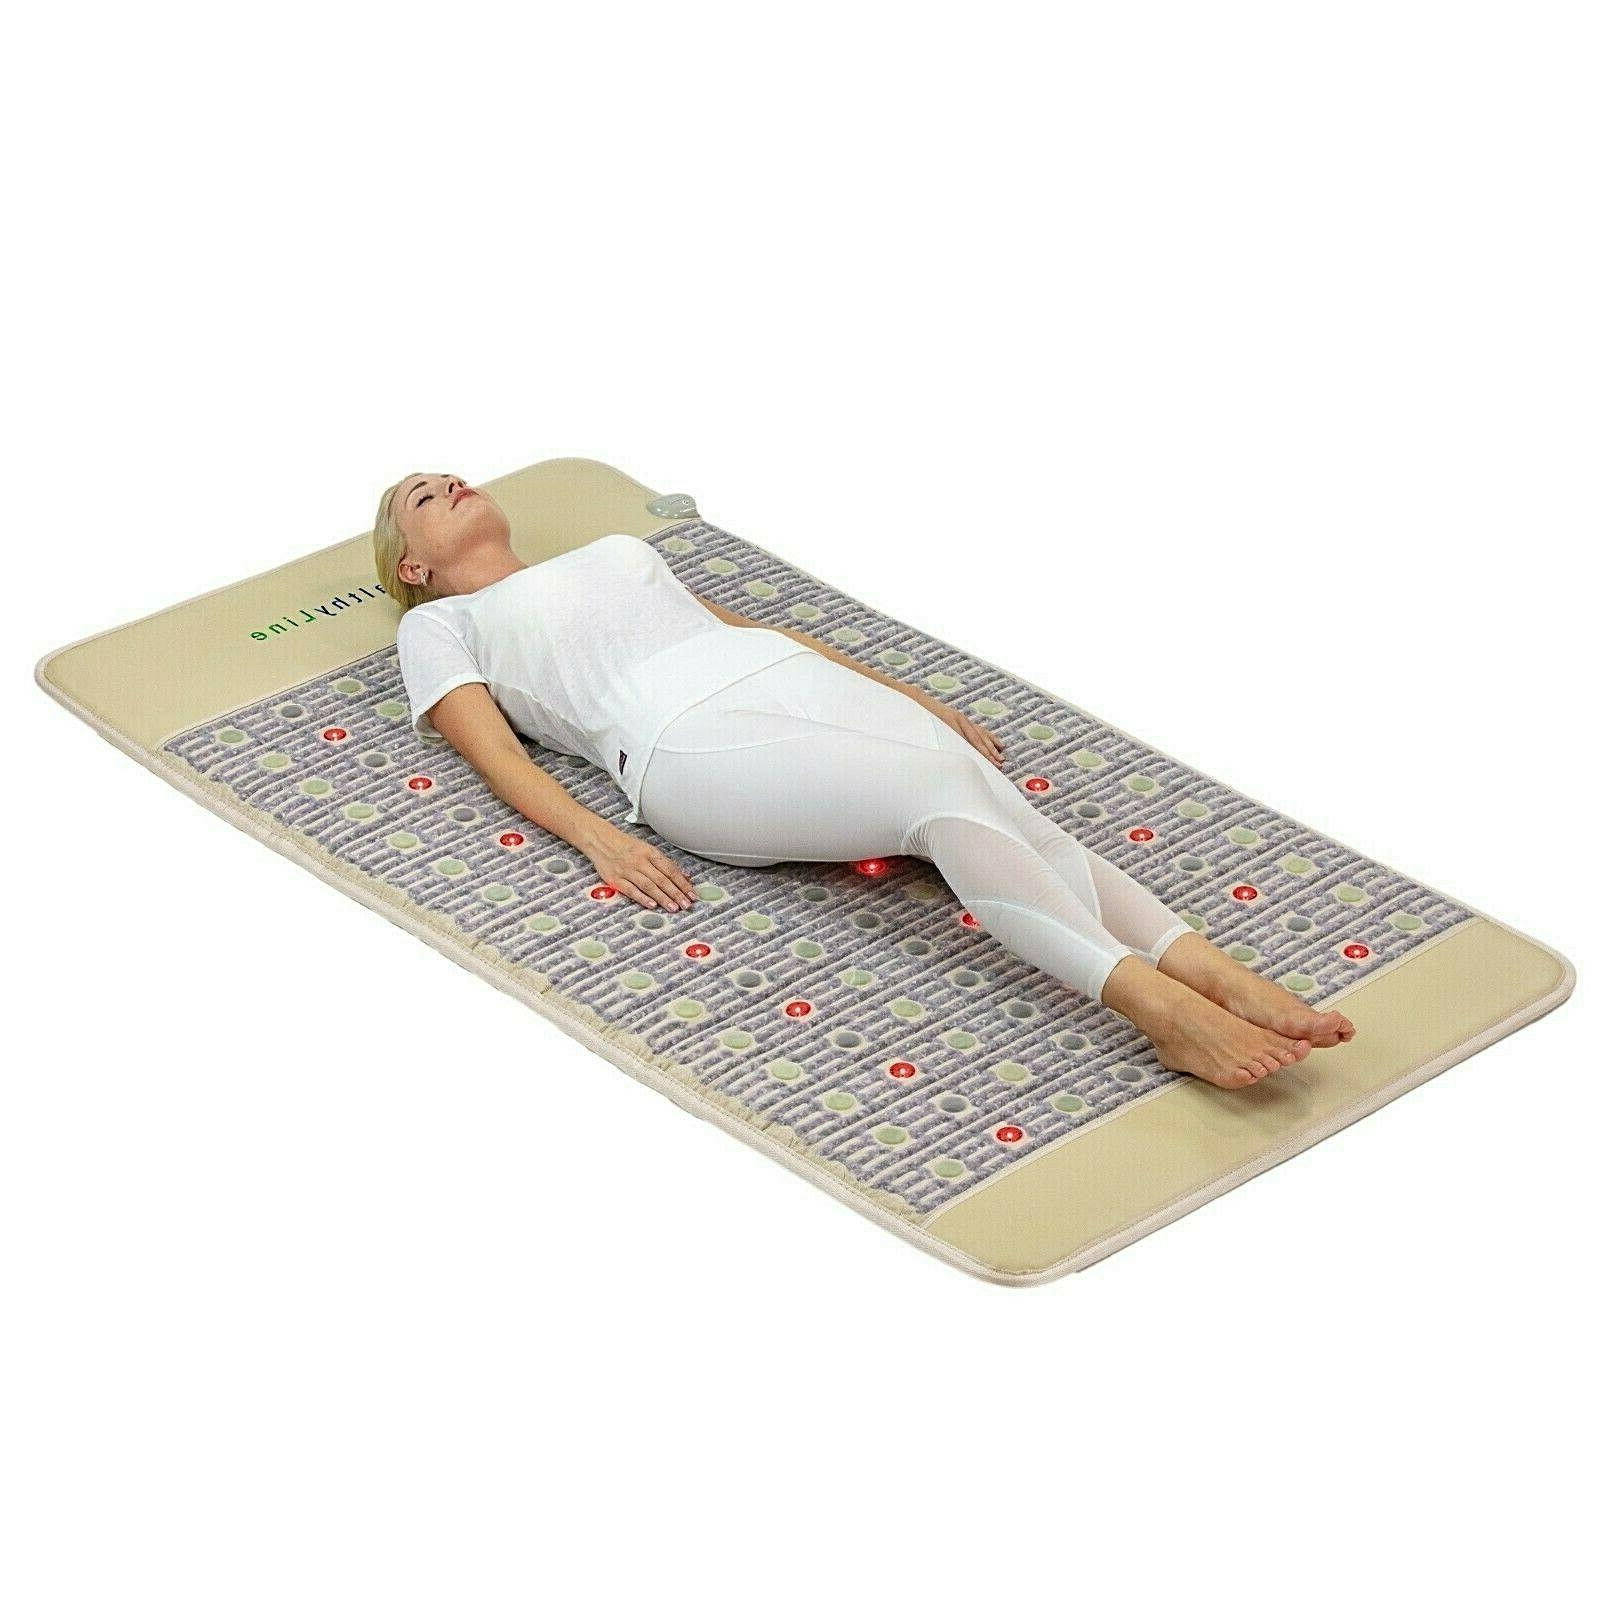 healthyline infrared heating pad pain management pemf